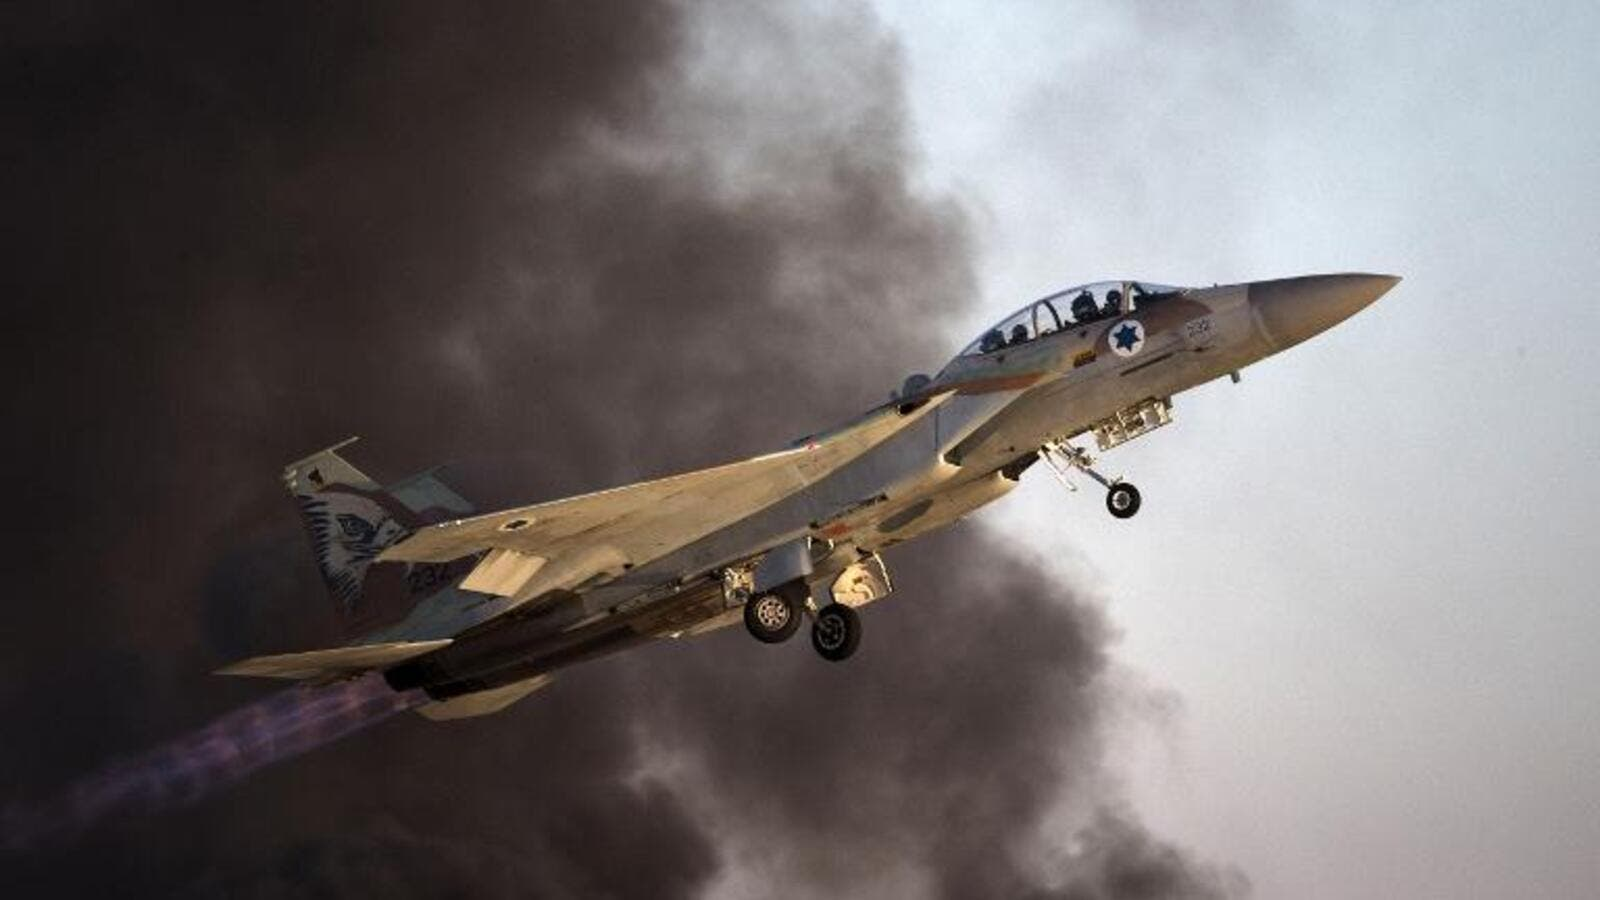 An Israeli F-15 fighter jet takes off during an air show. (AFP/ File Photo)